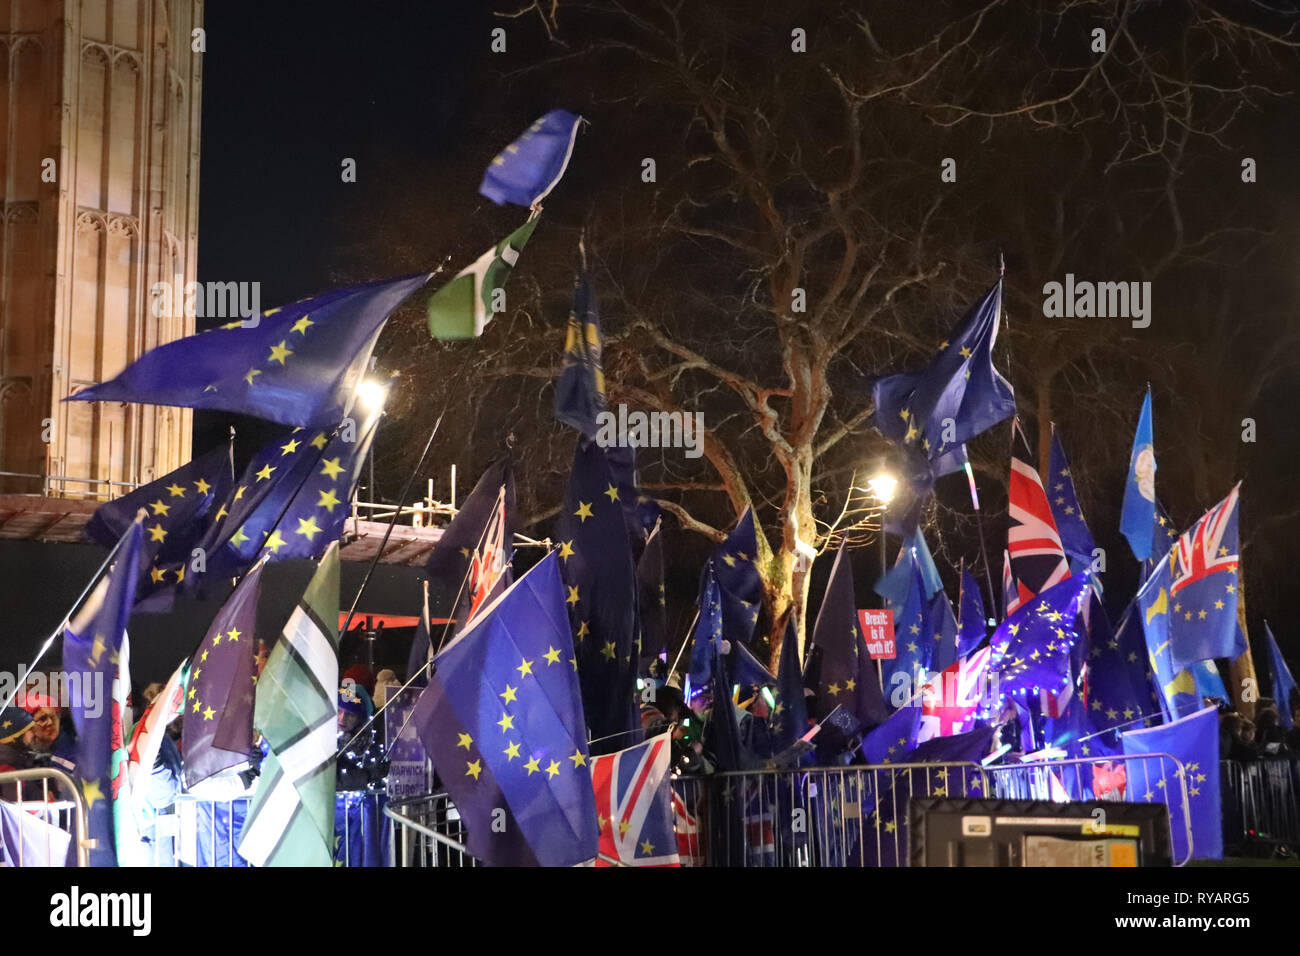 Bevy of EU Flags at Parliament: Pro-remain demonstrators came out in force on the night of the Meaningful Vote on Brexit, with floods of EU flags, doted with regional flags as well, flying all day and night outside the House of Parliament. - Stock Image